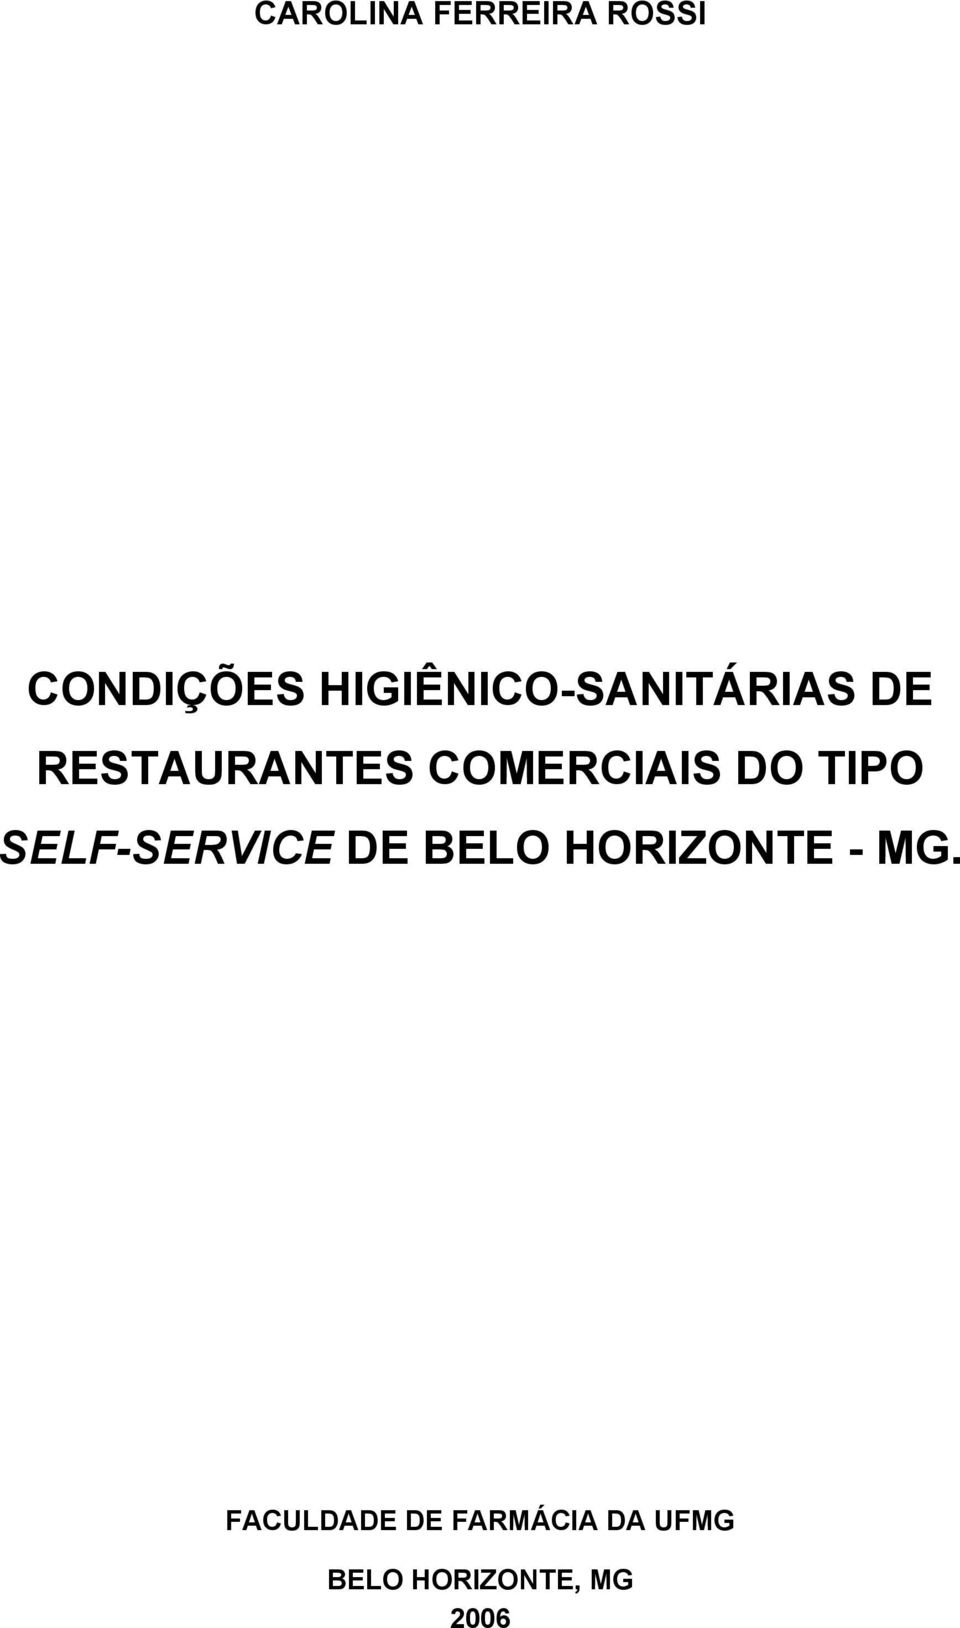 COMERCIAIS DO TIPO SELF-SERVICE DE BELO